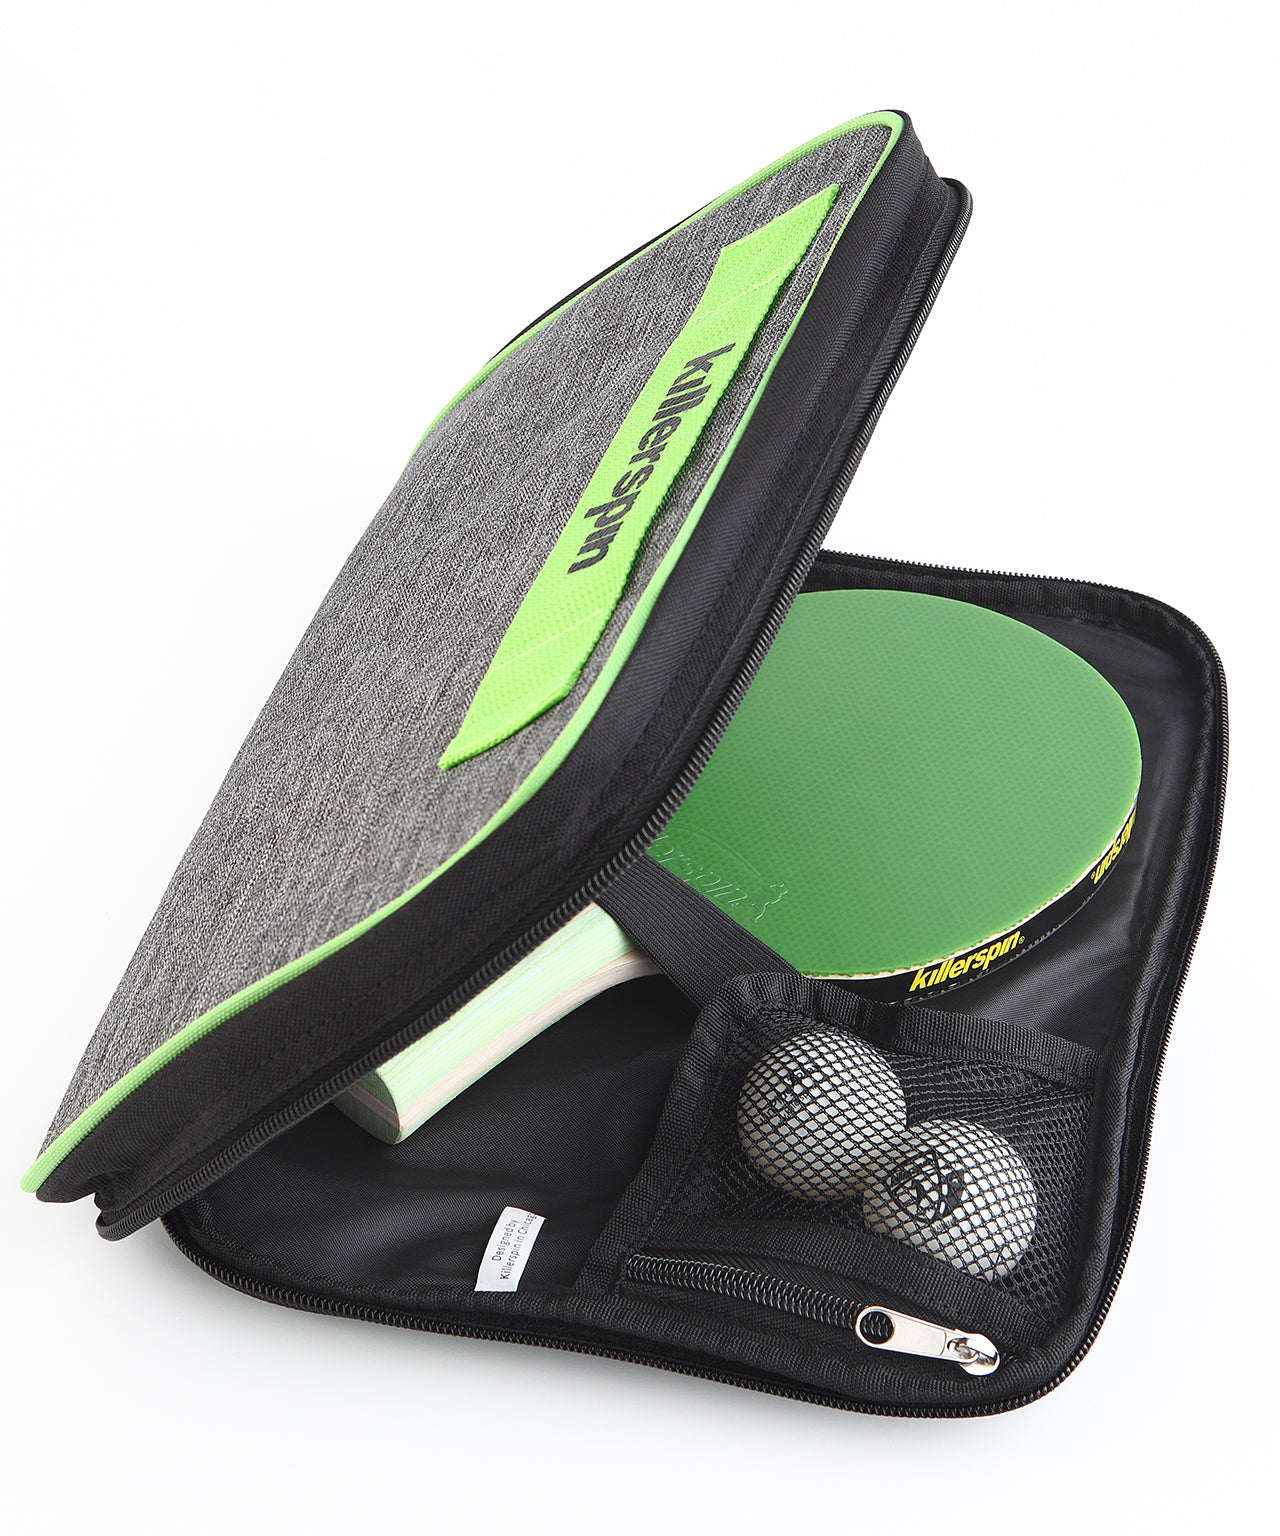 Killerspin Optima Table Tennis Case Racket Package